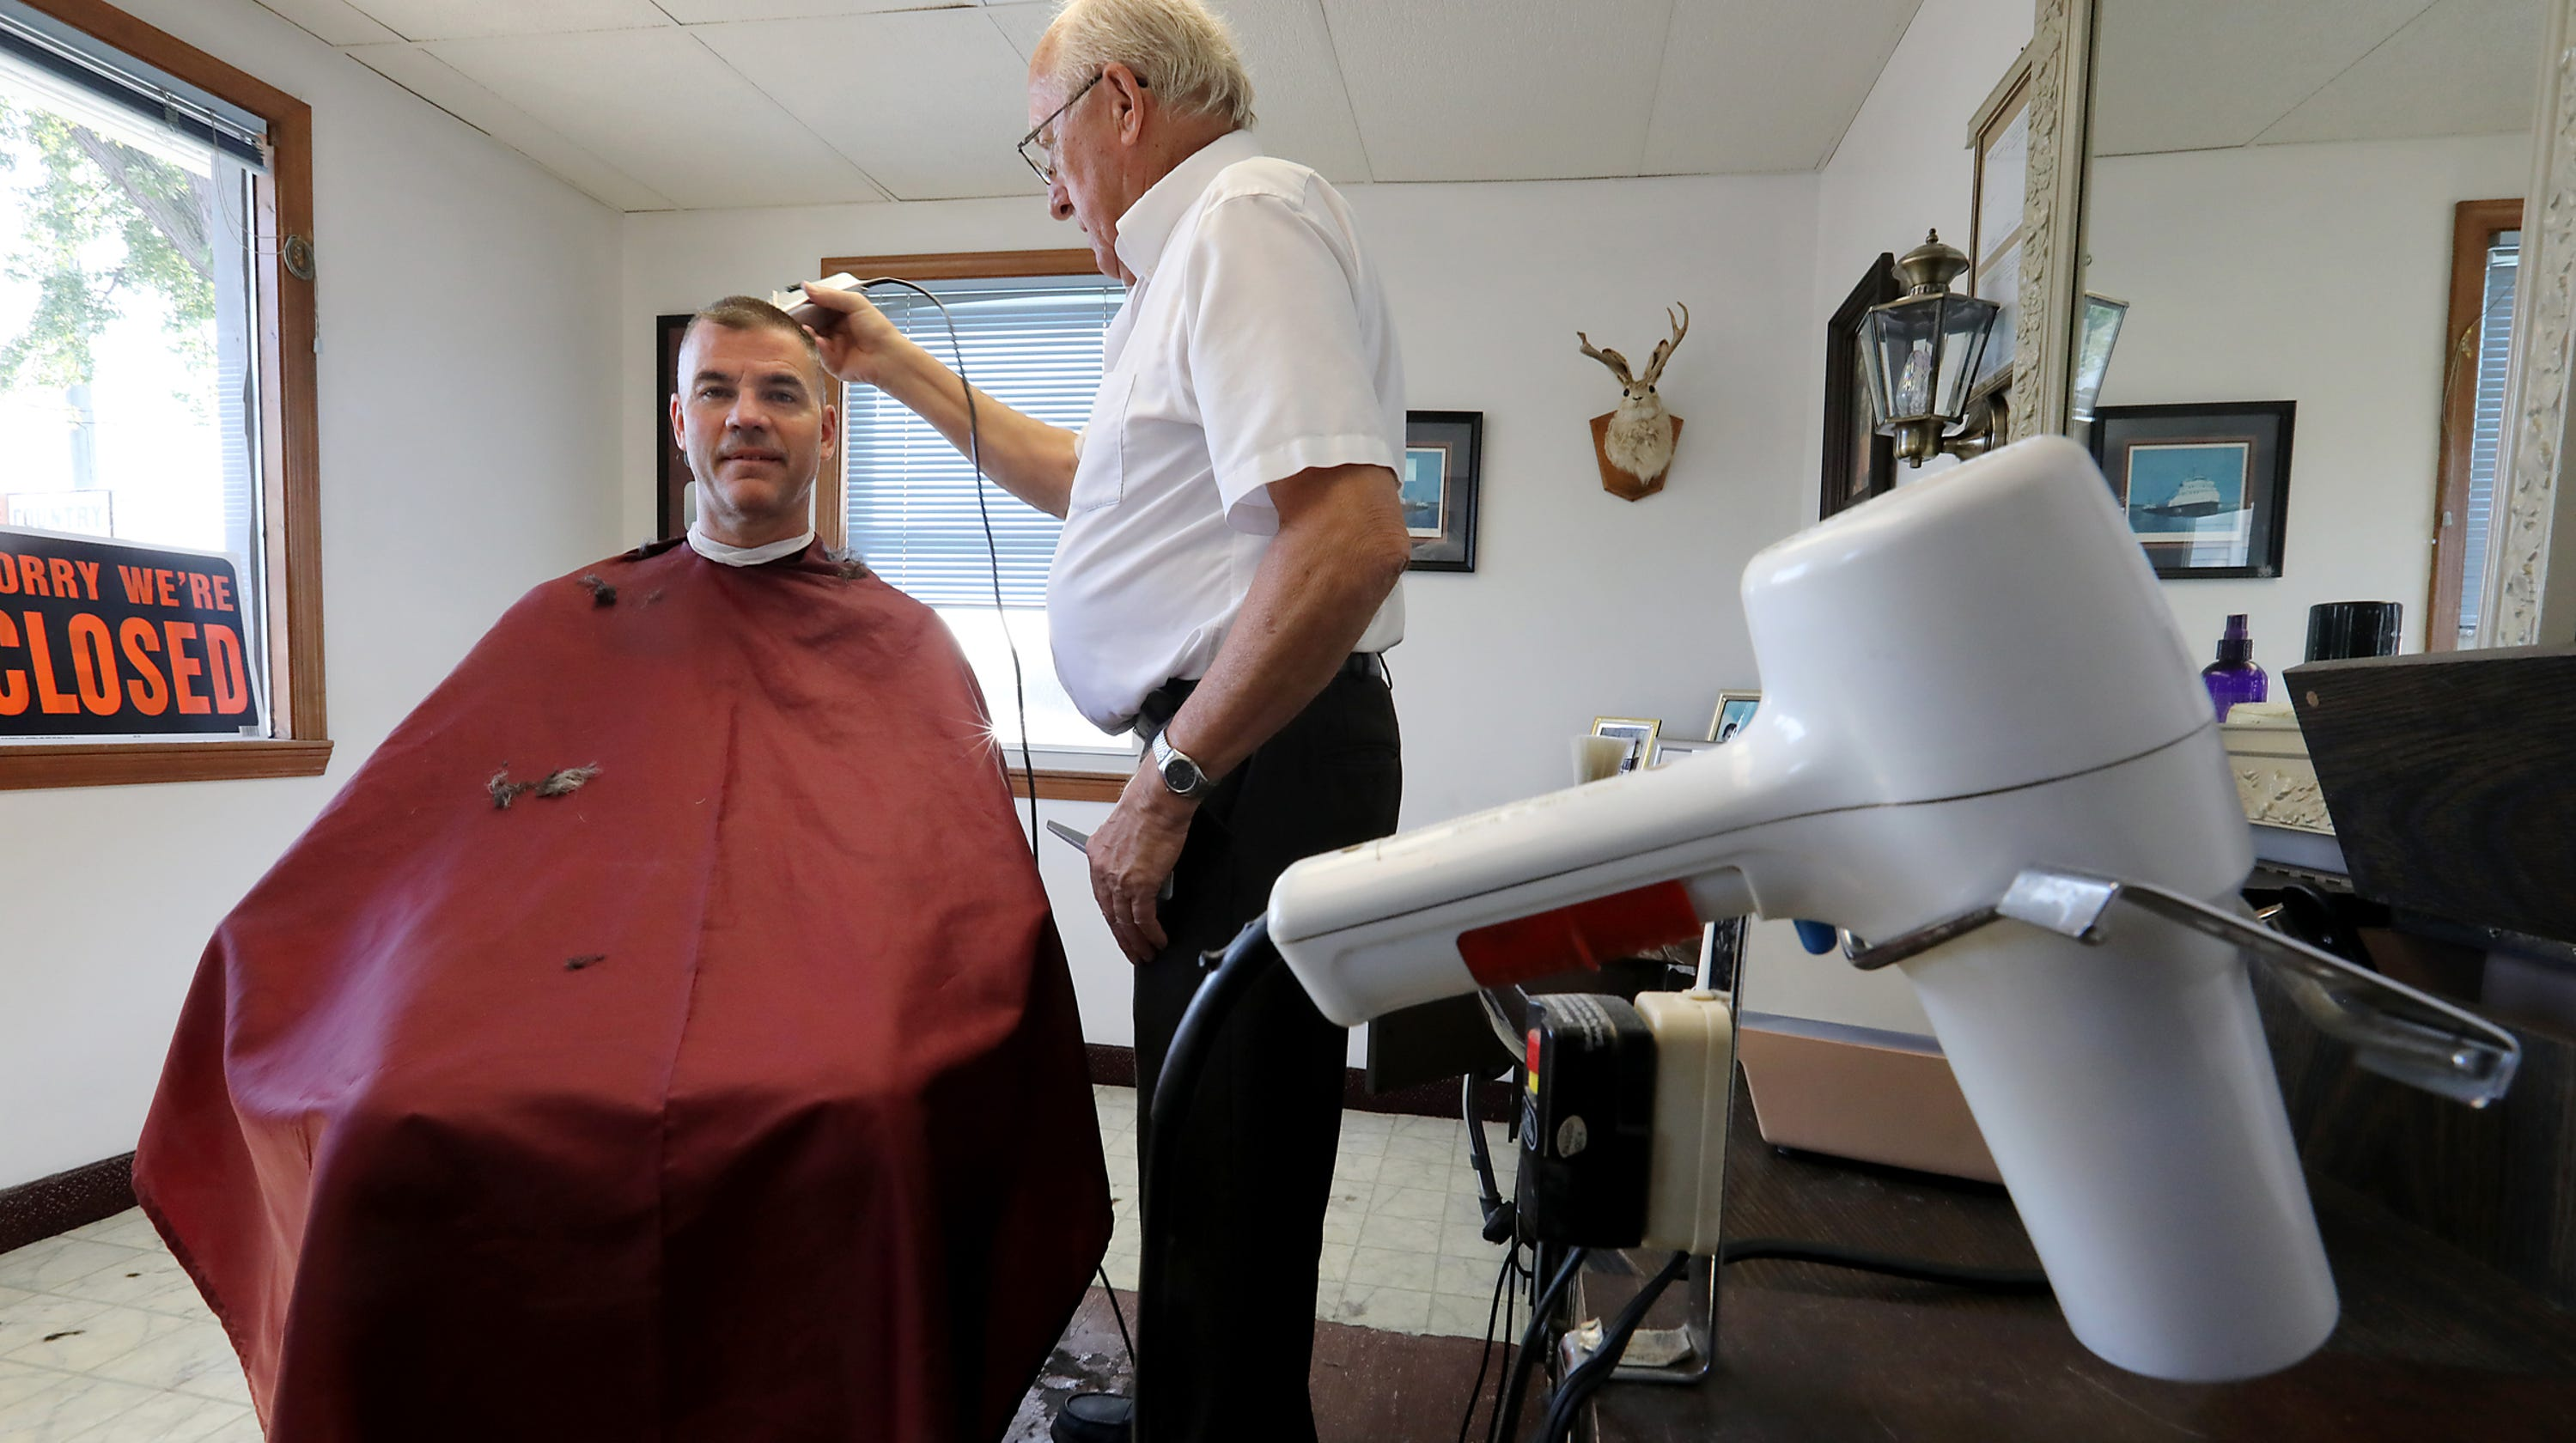 Fraleys Barbershop In St Clair Closes After 33 Years